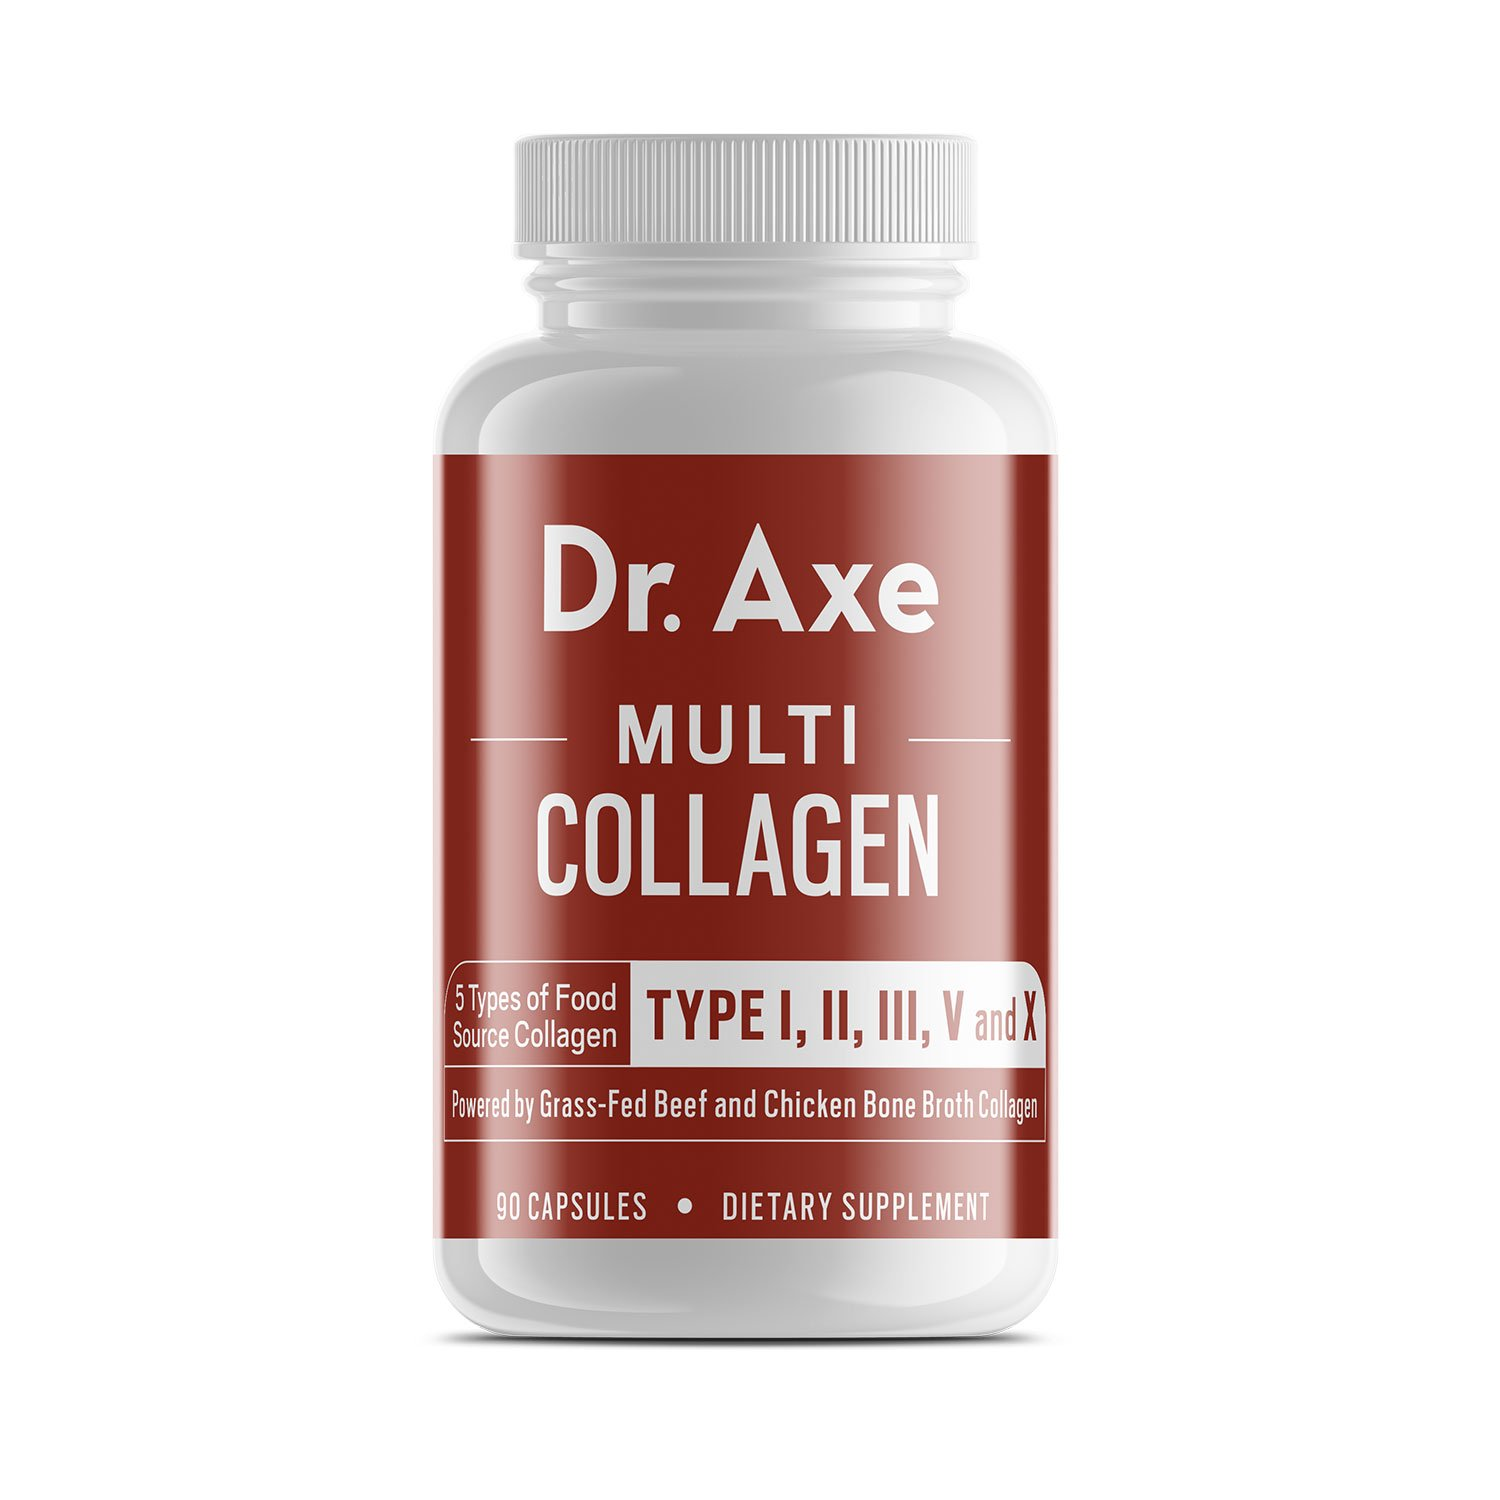 Dr. Axe Multi-Collagen Protein Capsules, 90 Count - High-Quality Blend of Grass-Fed Beef, Chicken, Wild Fish and Eggshell Collagen Peptides, Providing Type I, II, III, V and X - Formerly Dr. Collagen